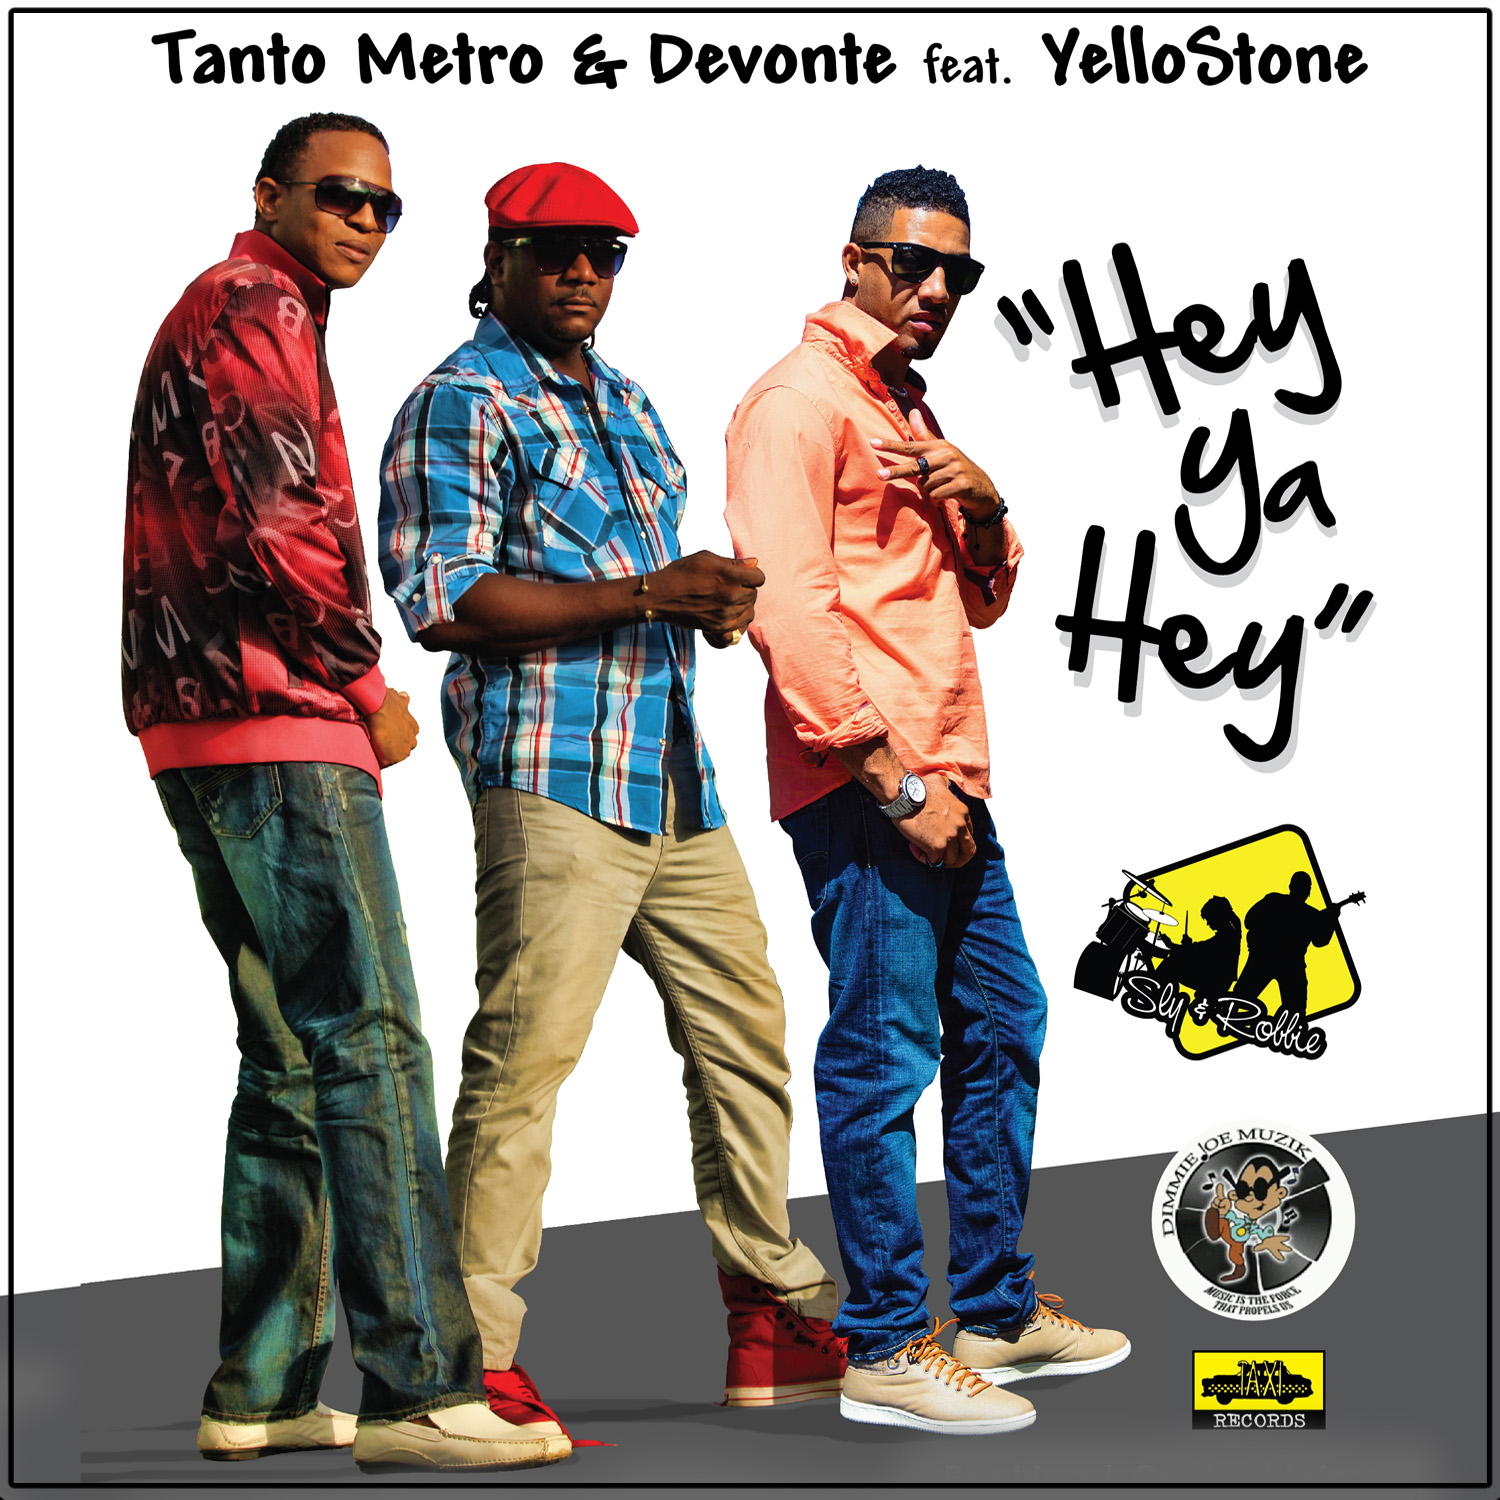 TANTO-METRO-DEVONTE-FT-YELLOSTONE-HEY-YA-HEY-ONE-POP-MUSIC-TAXI-RECORDS-Cover